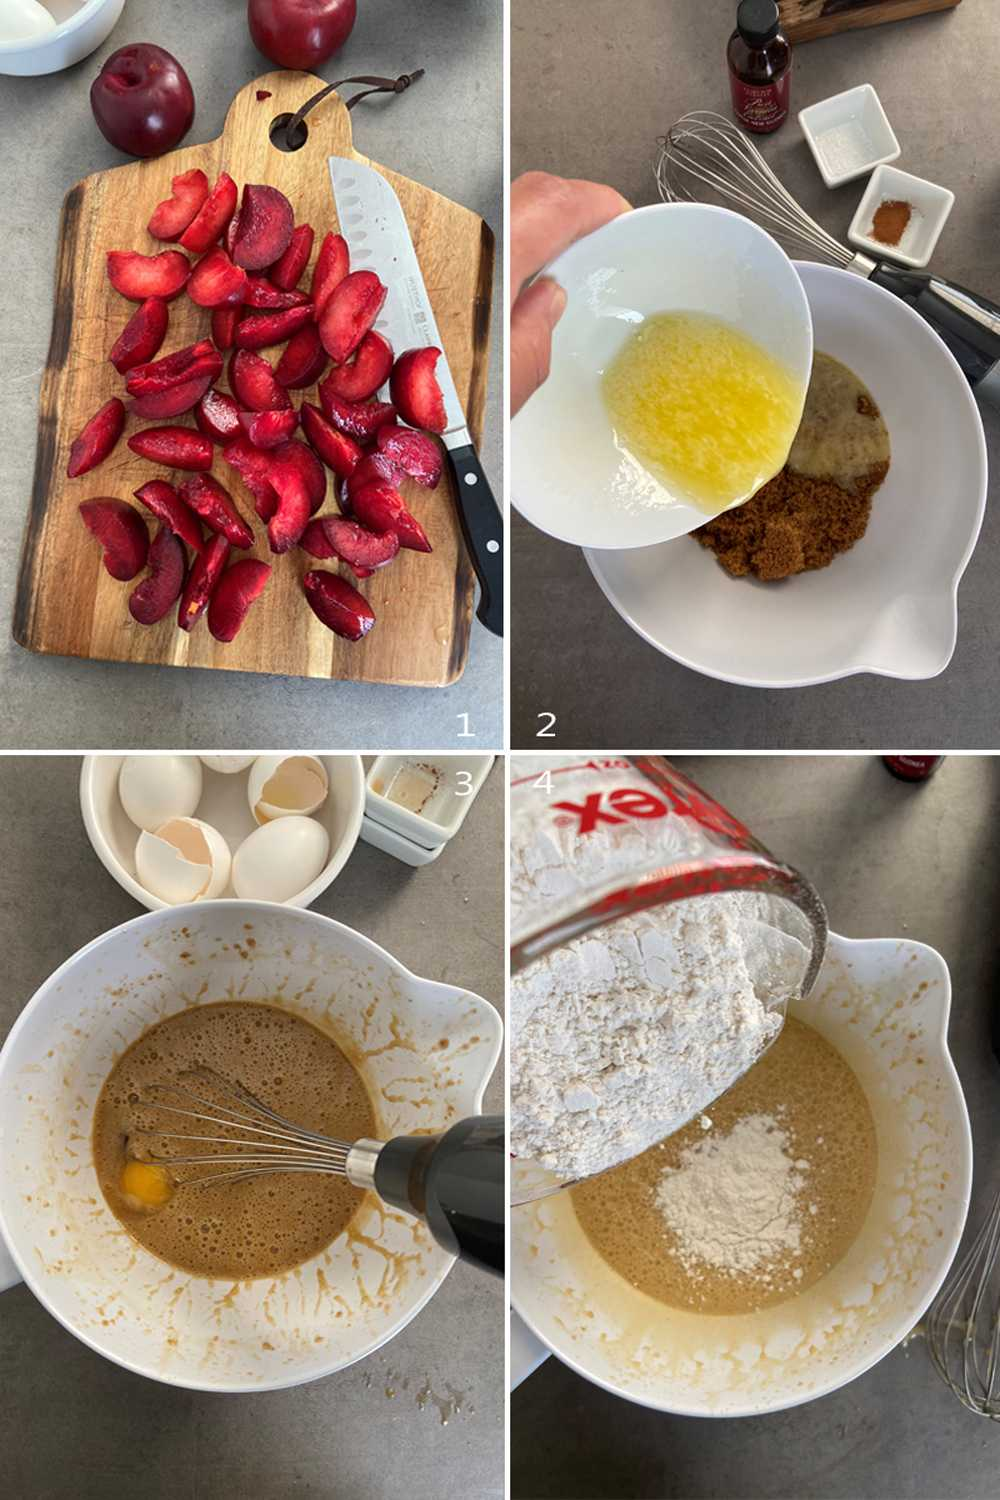 Step by steps images showing how to make plum cake (Zwetschgenkuchen)